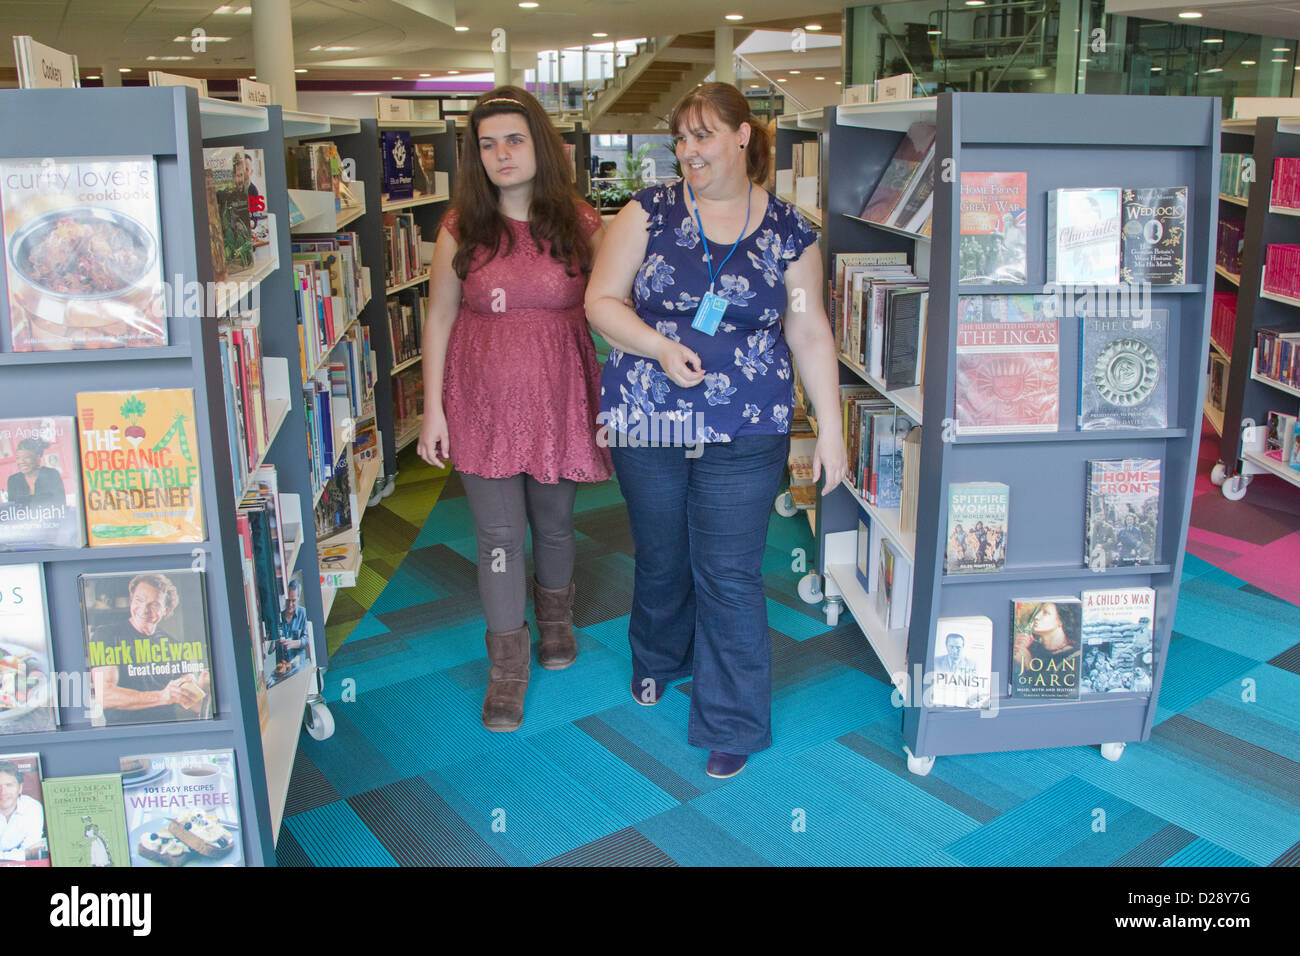 Out reach worker walking through book shelves with visually impaired woman - Stock Image